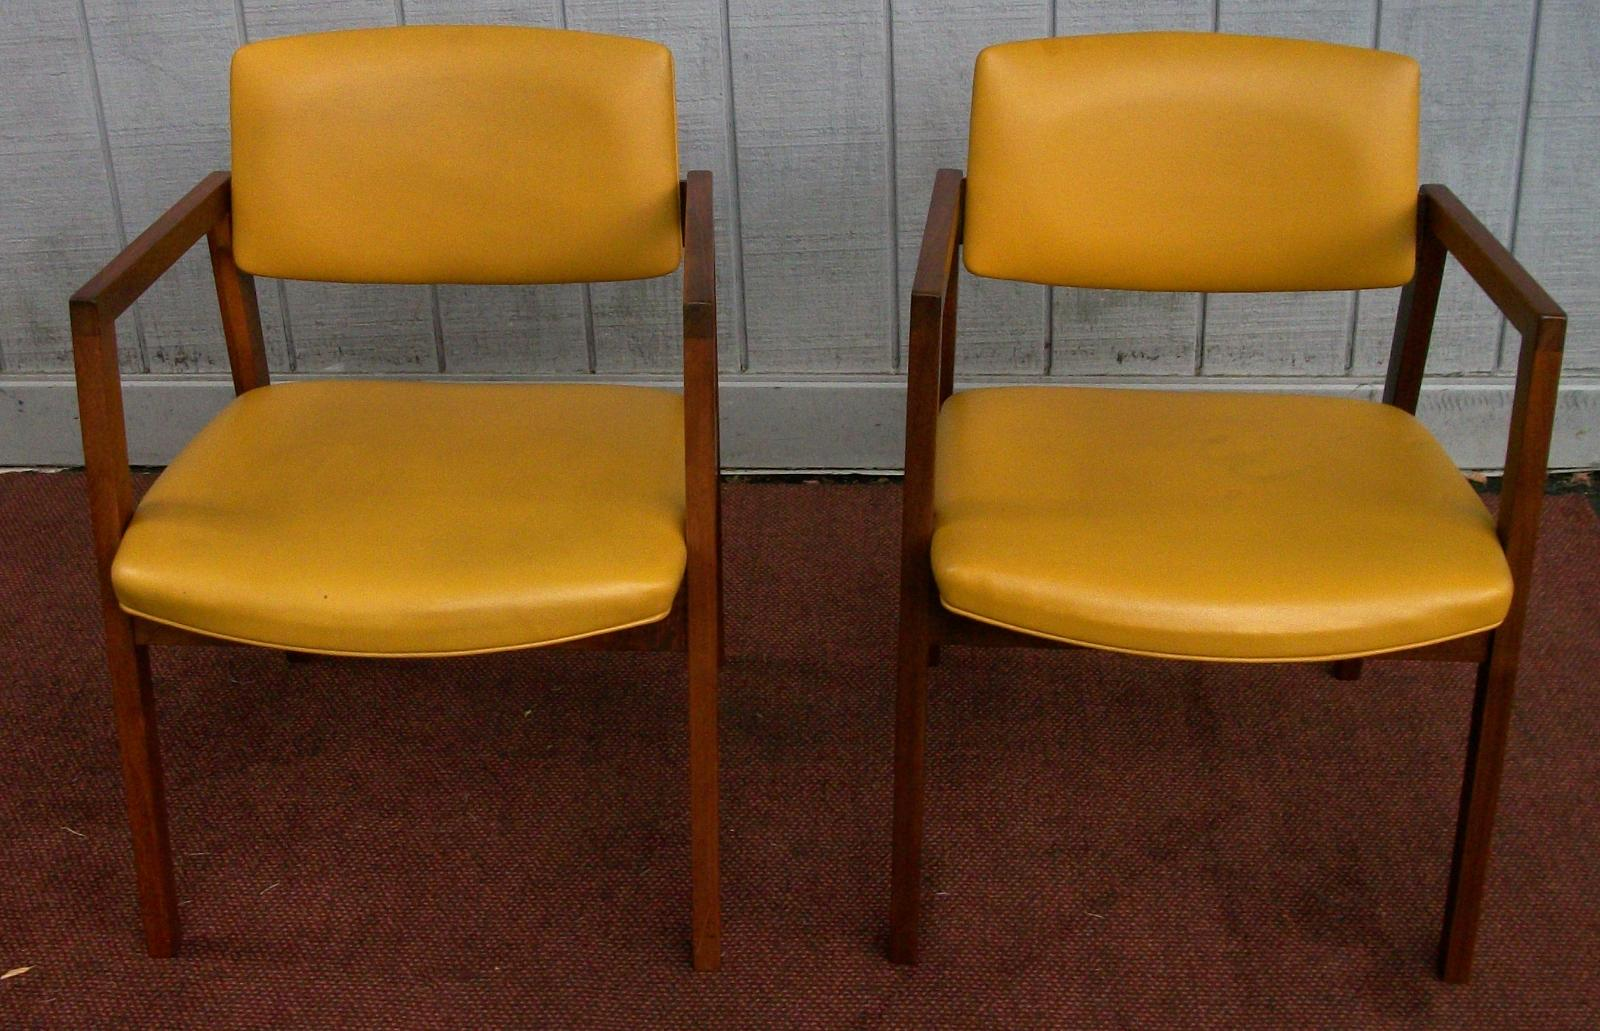 Pair Of Mid Century Modern Padded Chairs Made By Marble Imperial Furniture Company